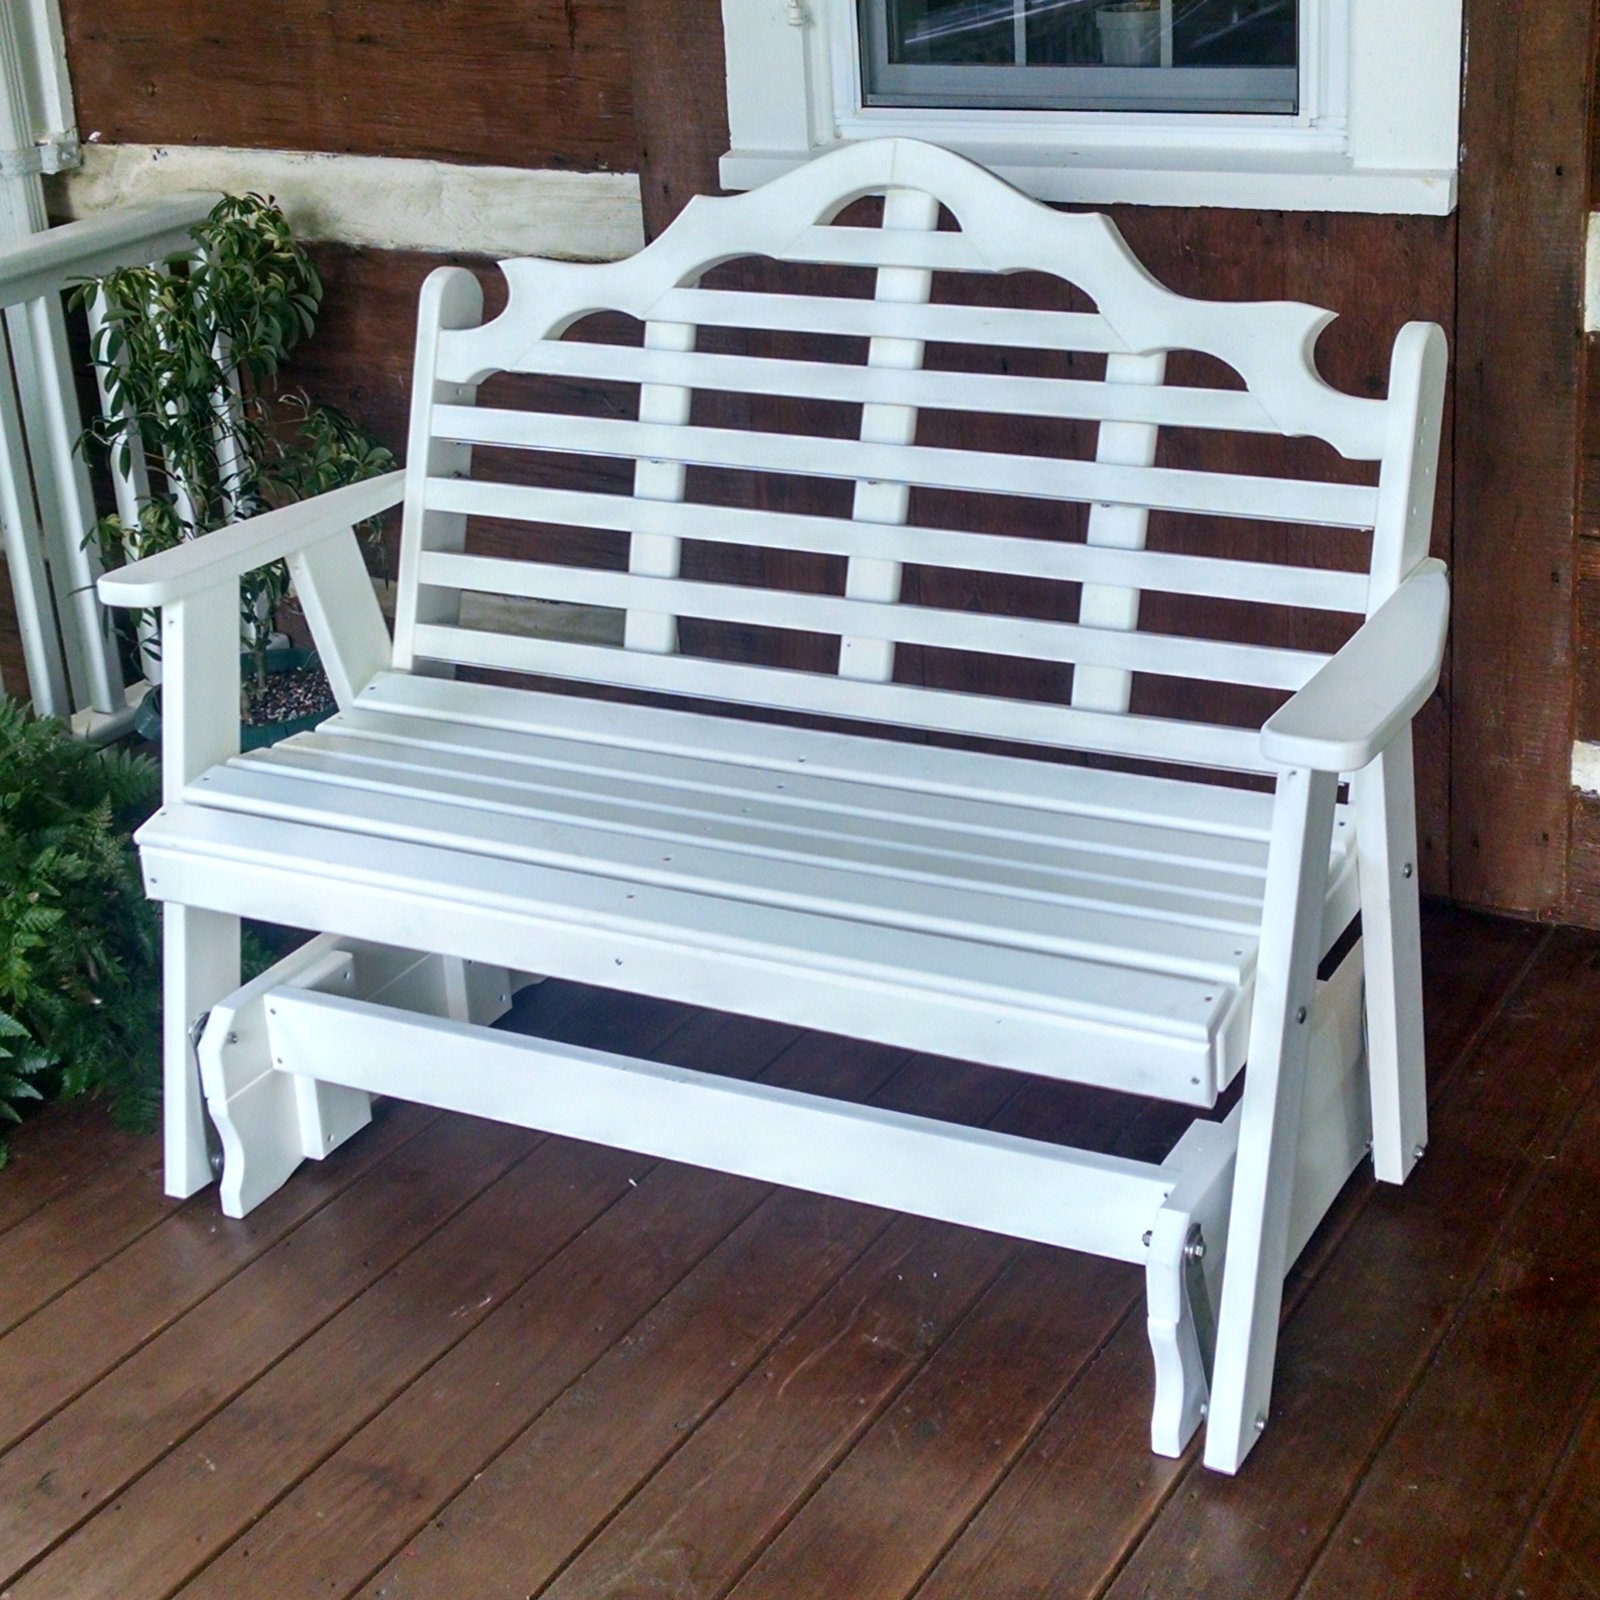 A & L Furniture Marlboro Poly Recycled Plastic Bench Glider